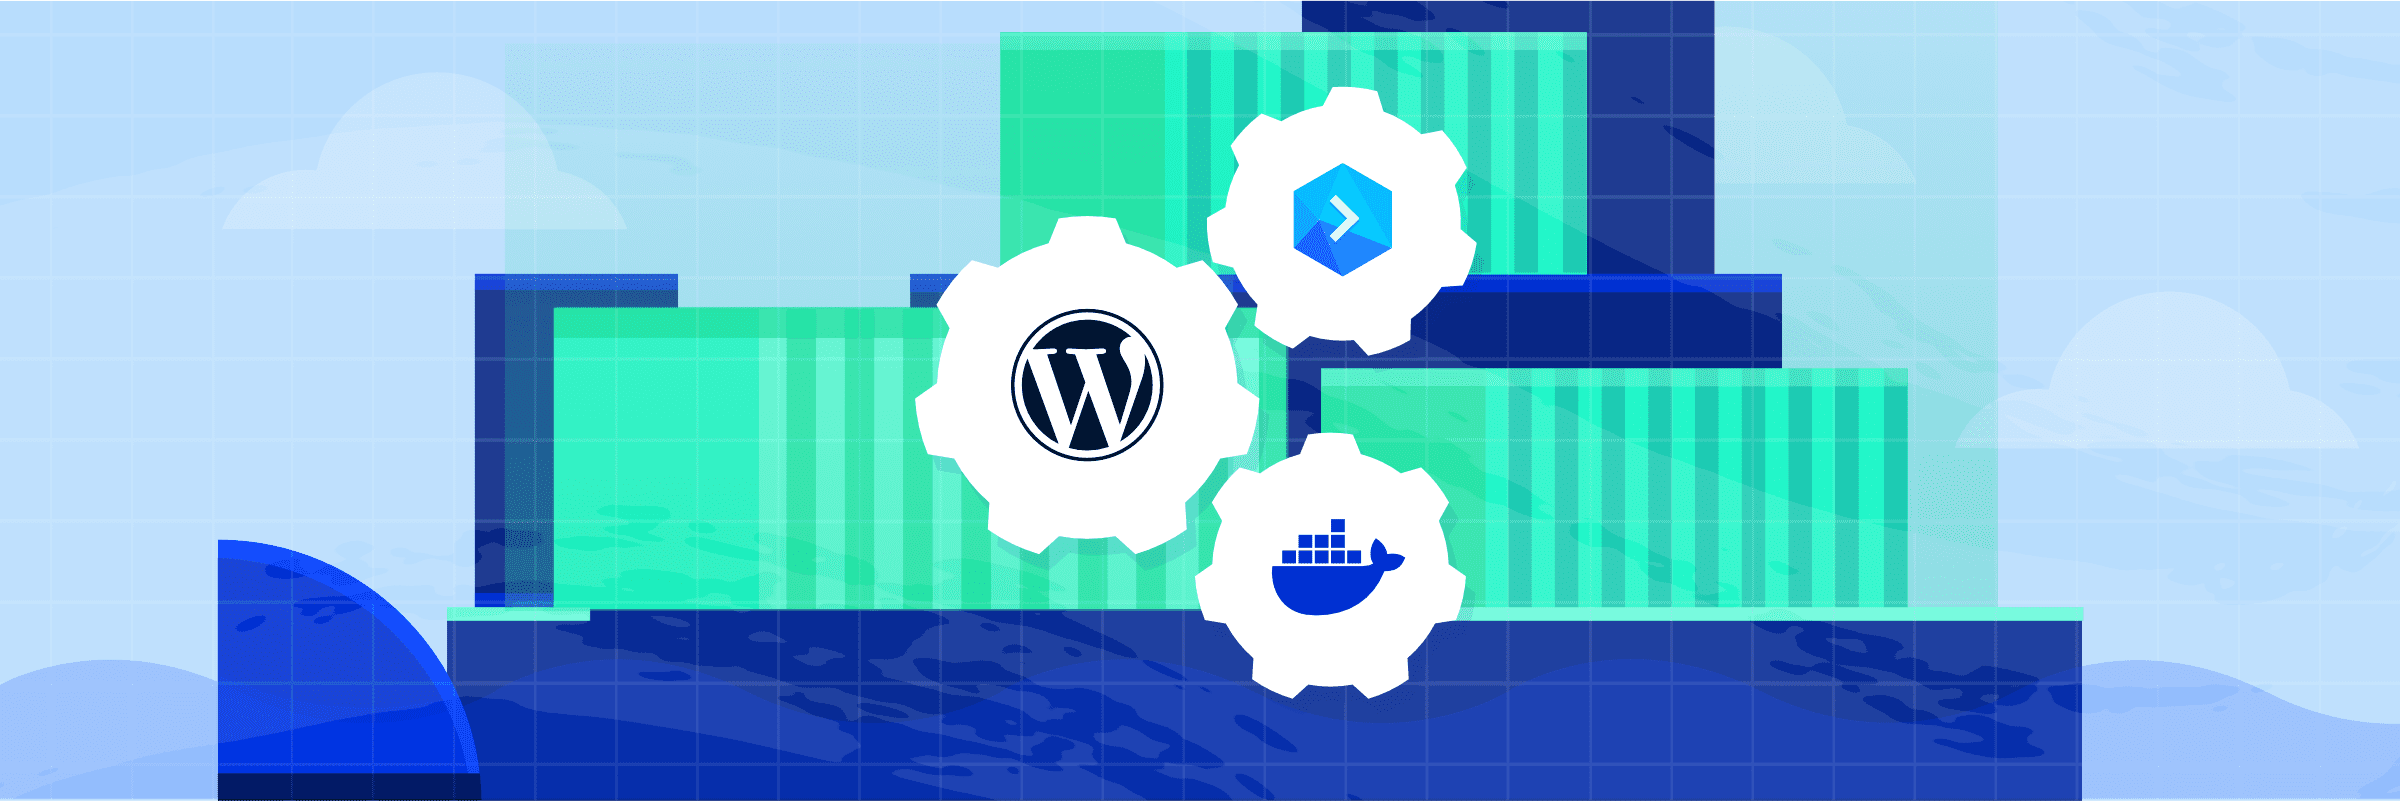 WordPress in Docker. Part 2: Automation